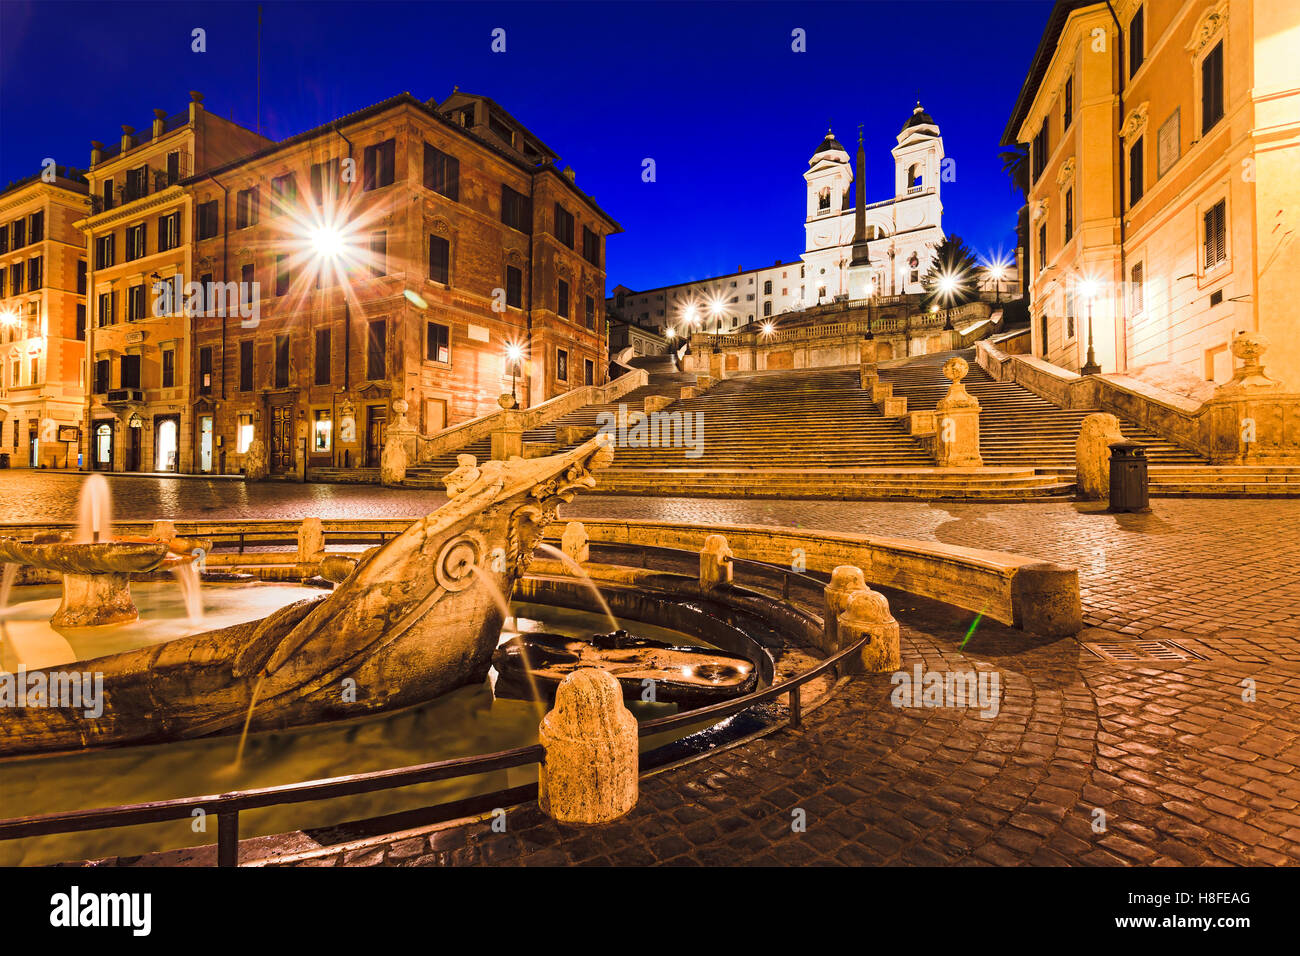 Historic spanish steps , church and boat shaped stone fountain in Rome, Italy, at sunrise. - Stock Image